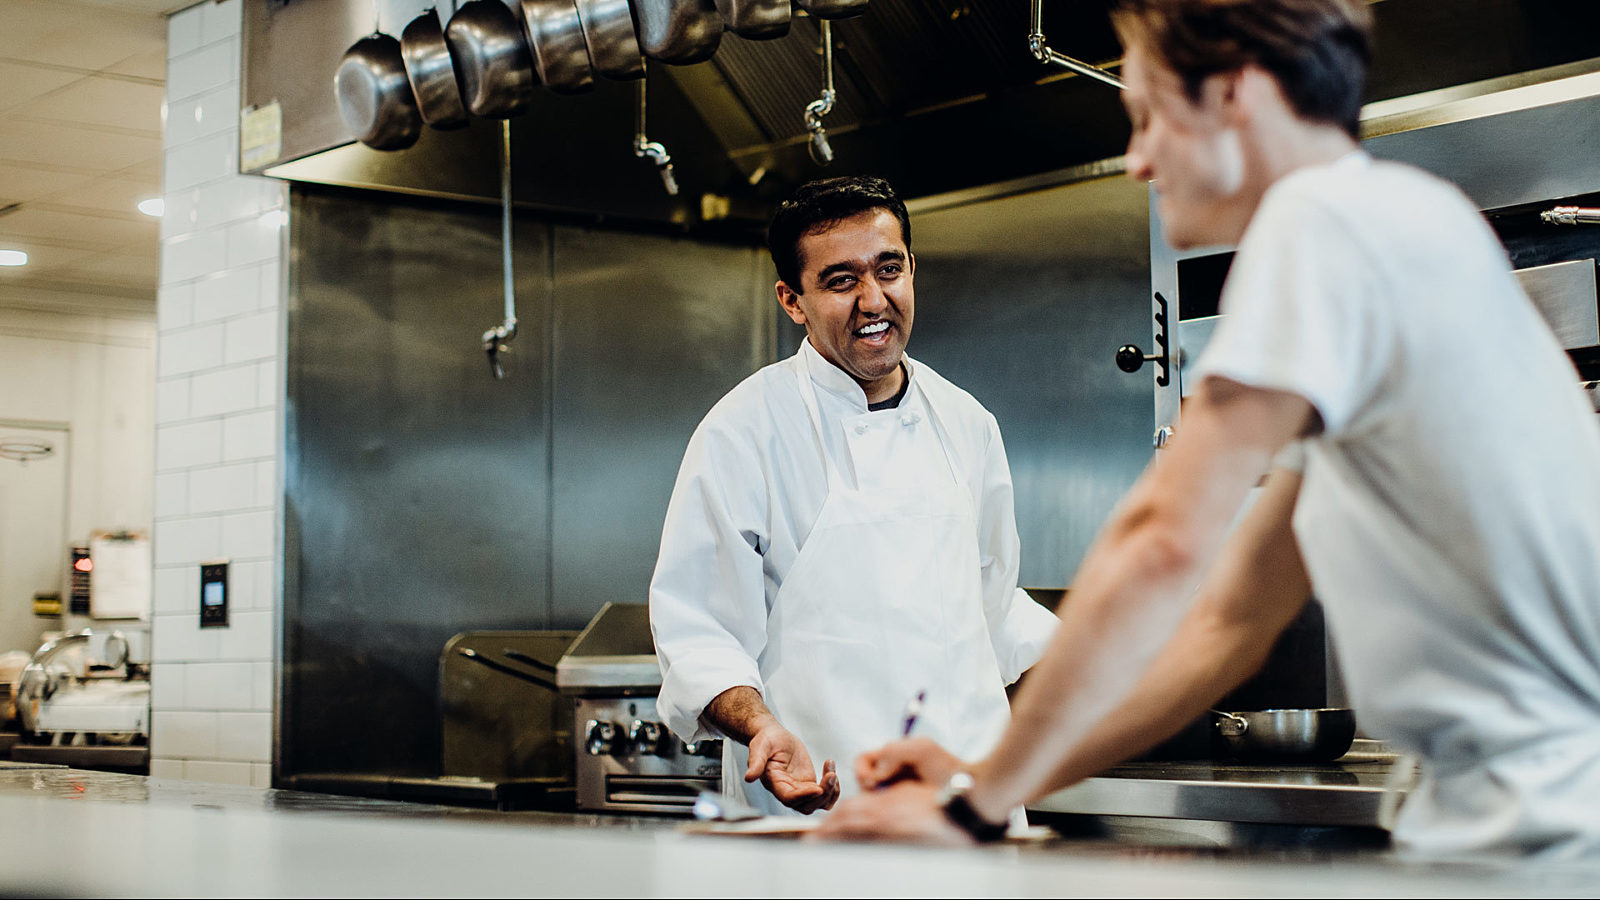 Restaurant Chef and Cook in the Kitchen - Open-Book Management Keeps Restaurant Employees Happy